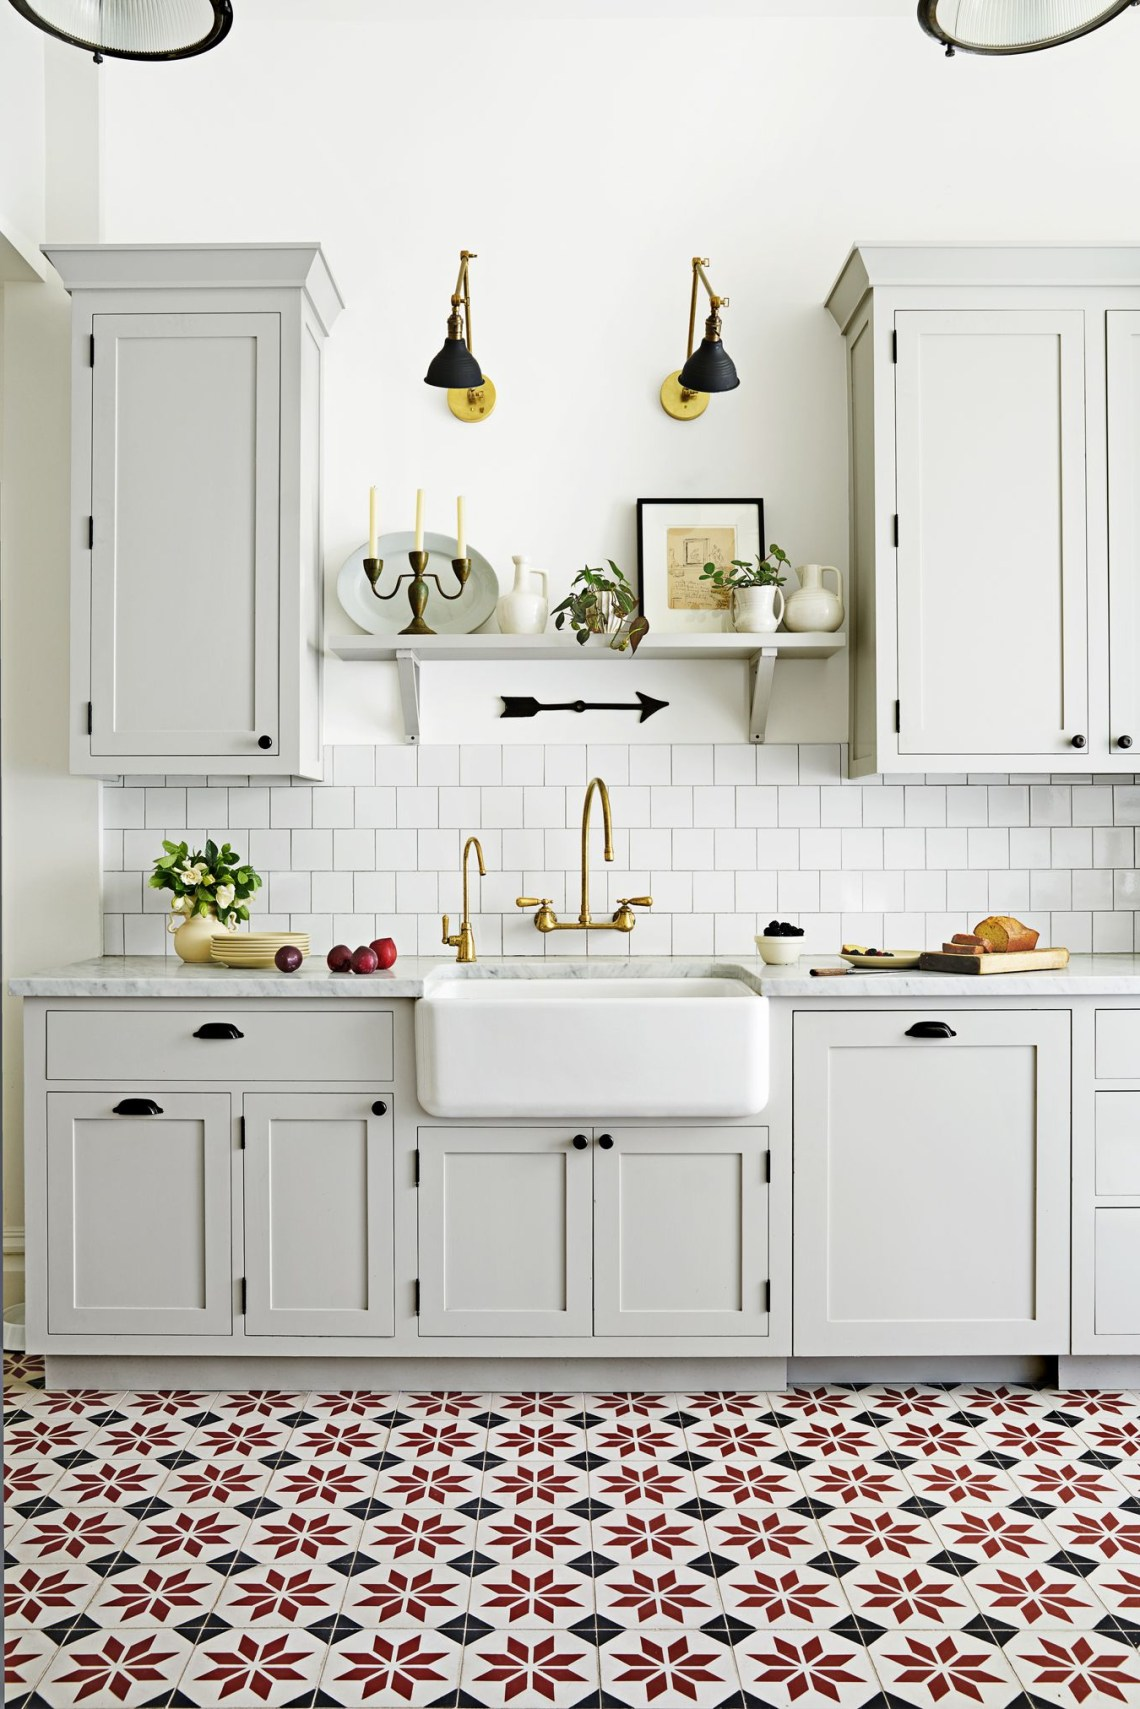 32 Kitchen Trends For 2020 That We Predict Will Be Everywhere Old World Kitchens Kitchen